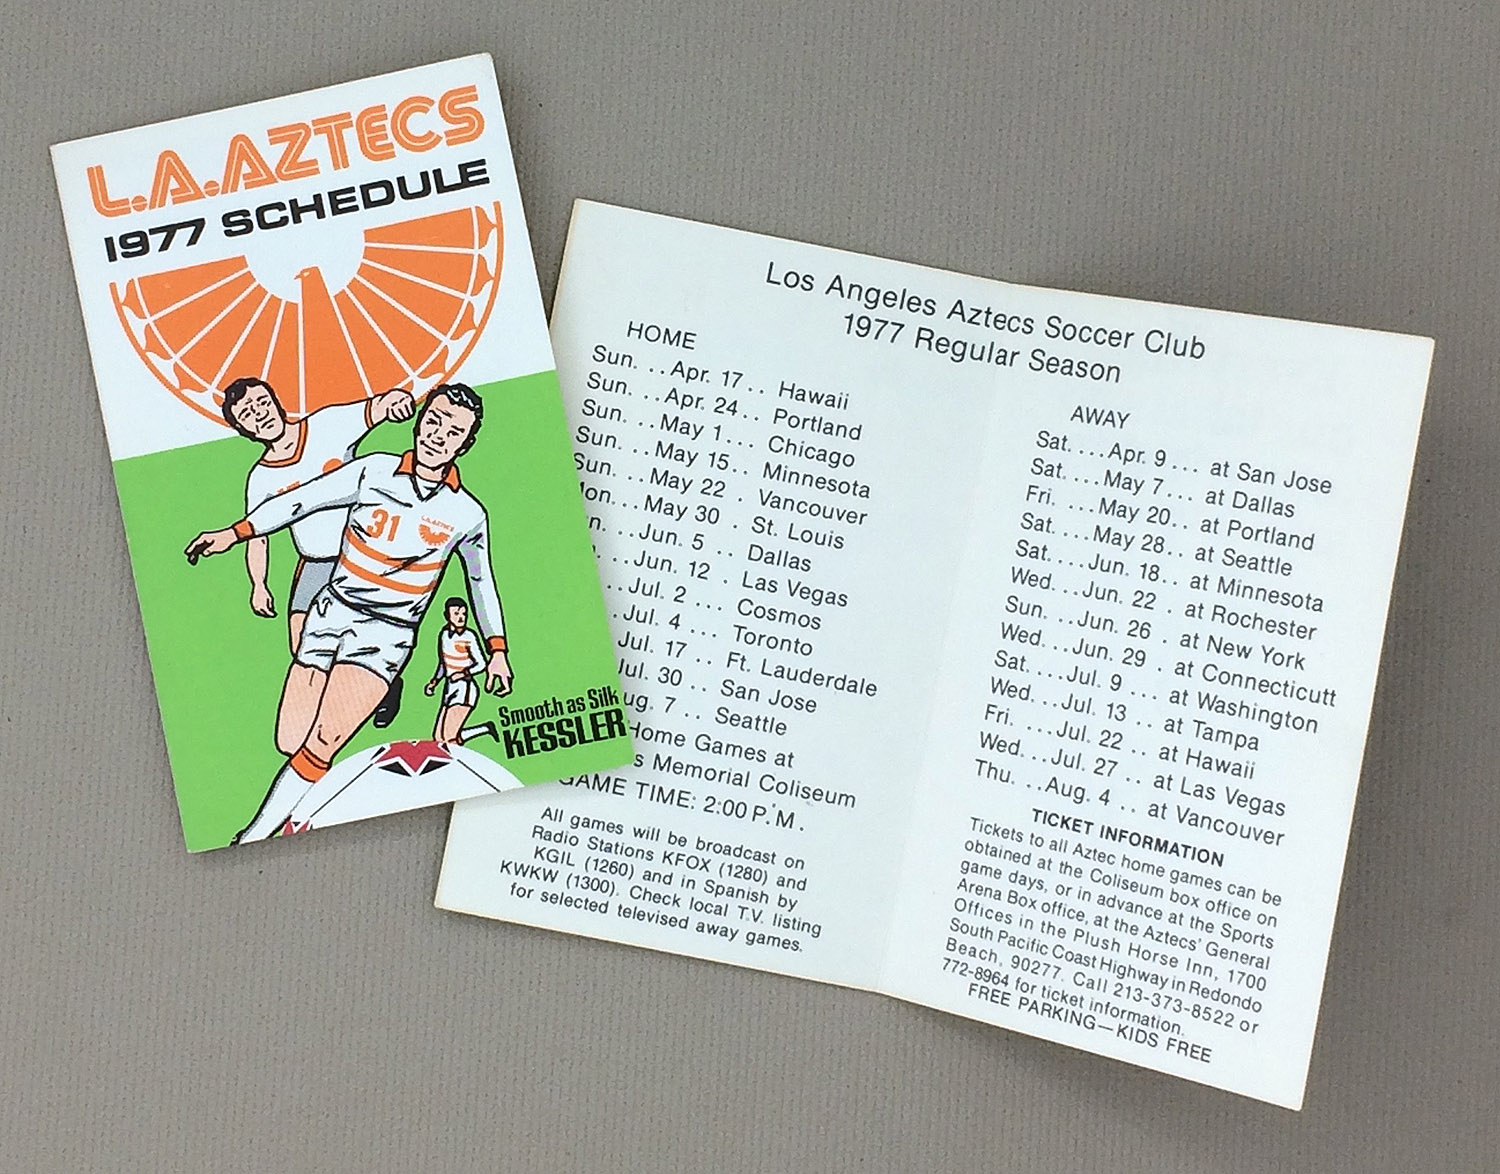 Los Angeles Aztecs 1977 Schedule